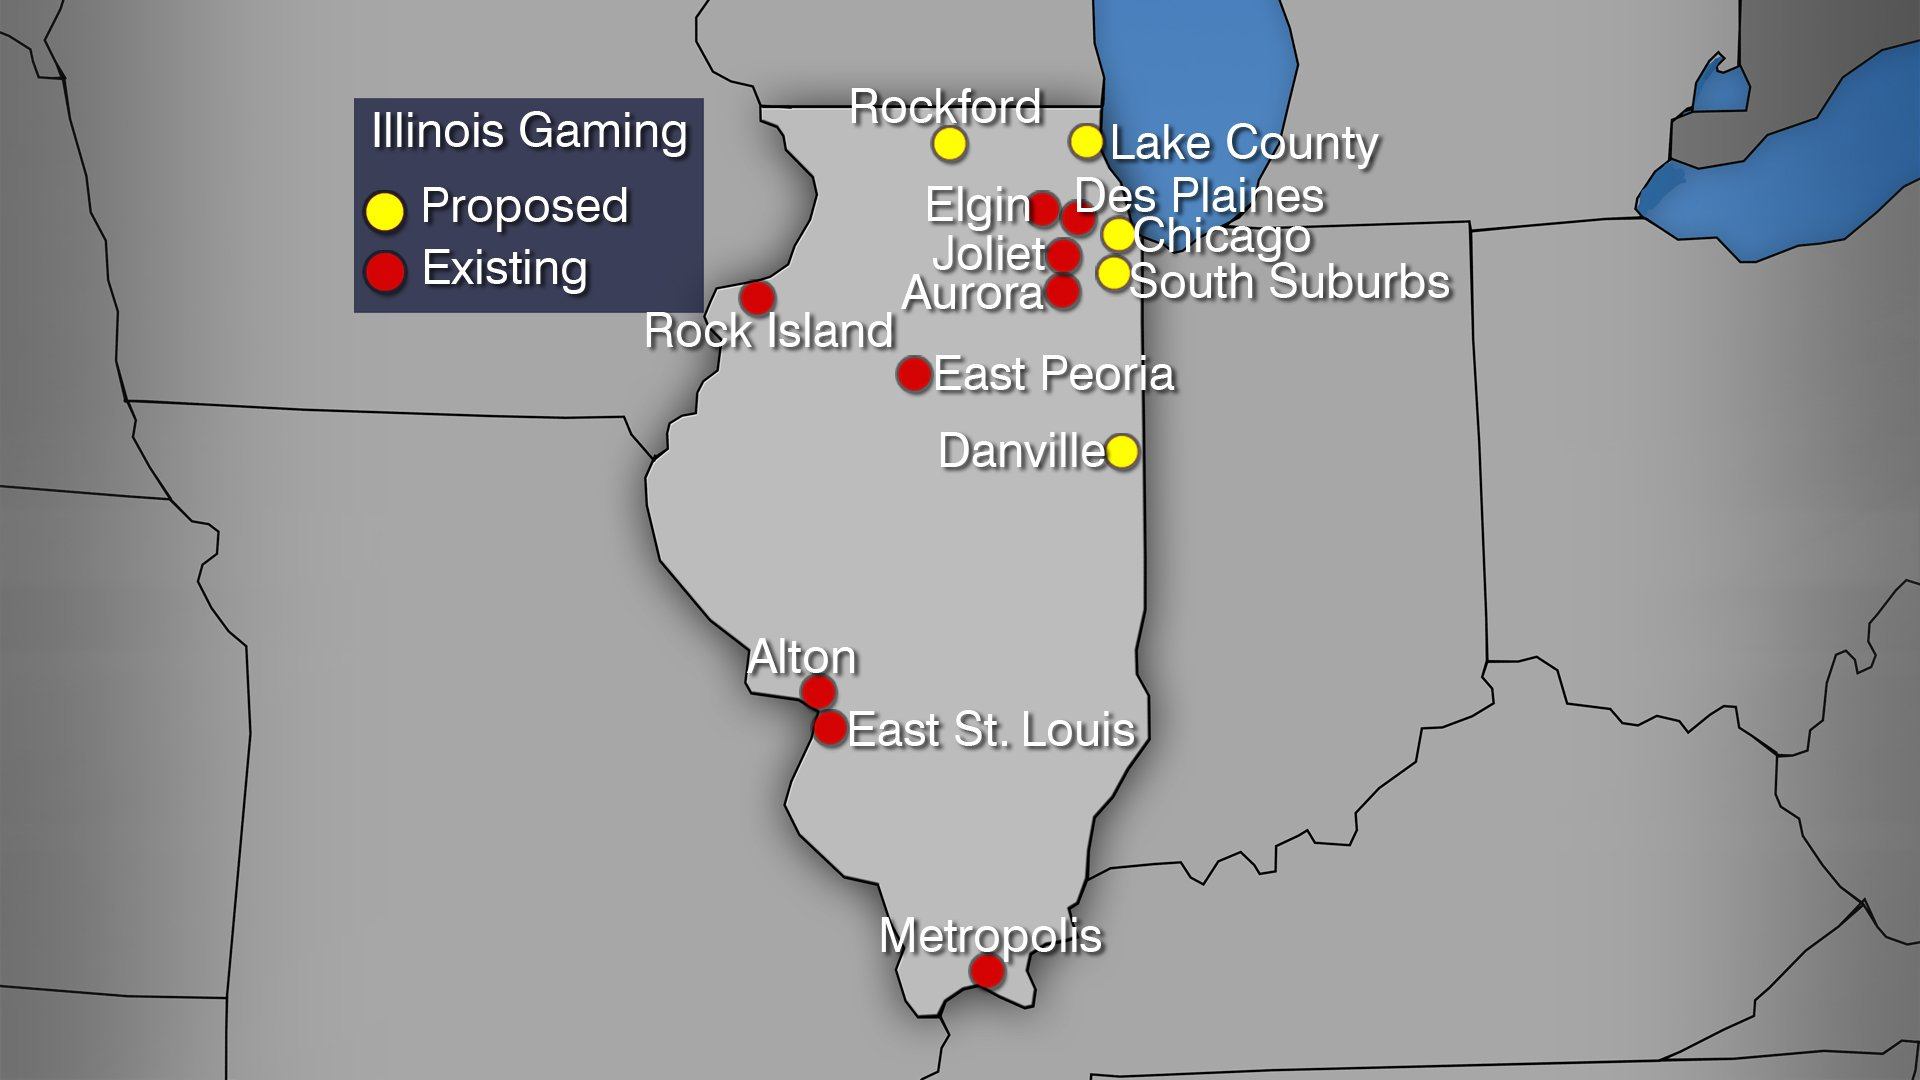 casino locations in illinois